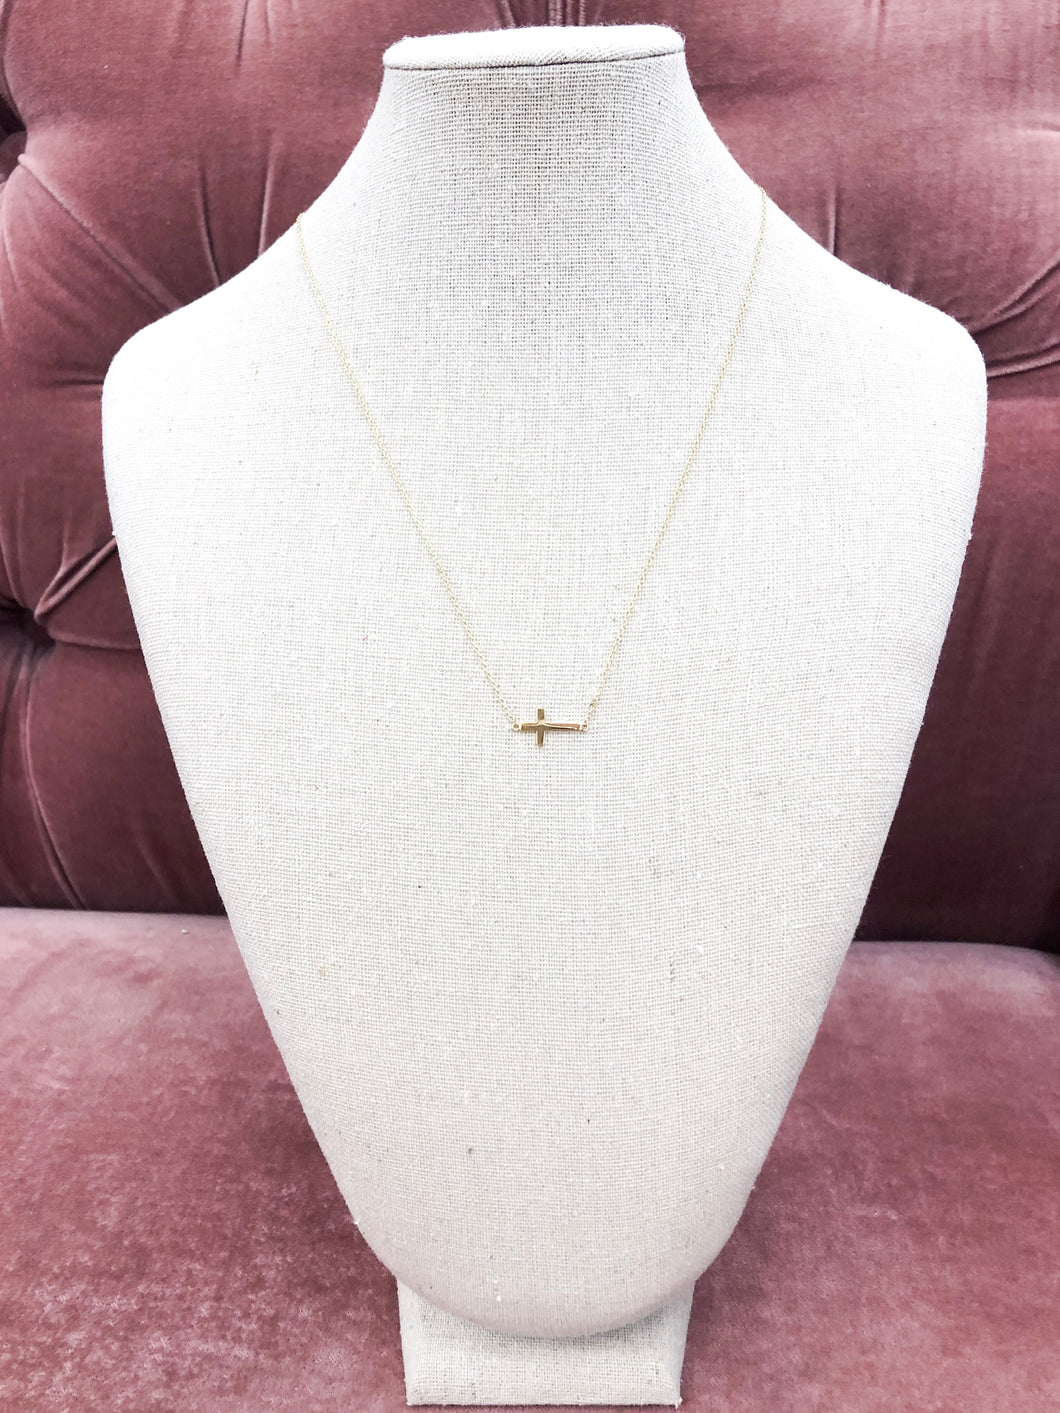 Tiny Sideways Cross Necklace in Gold